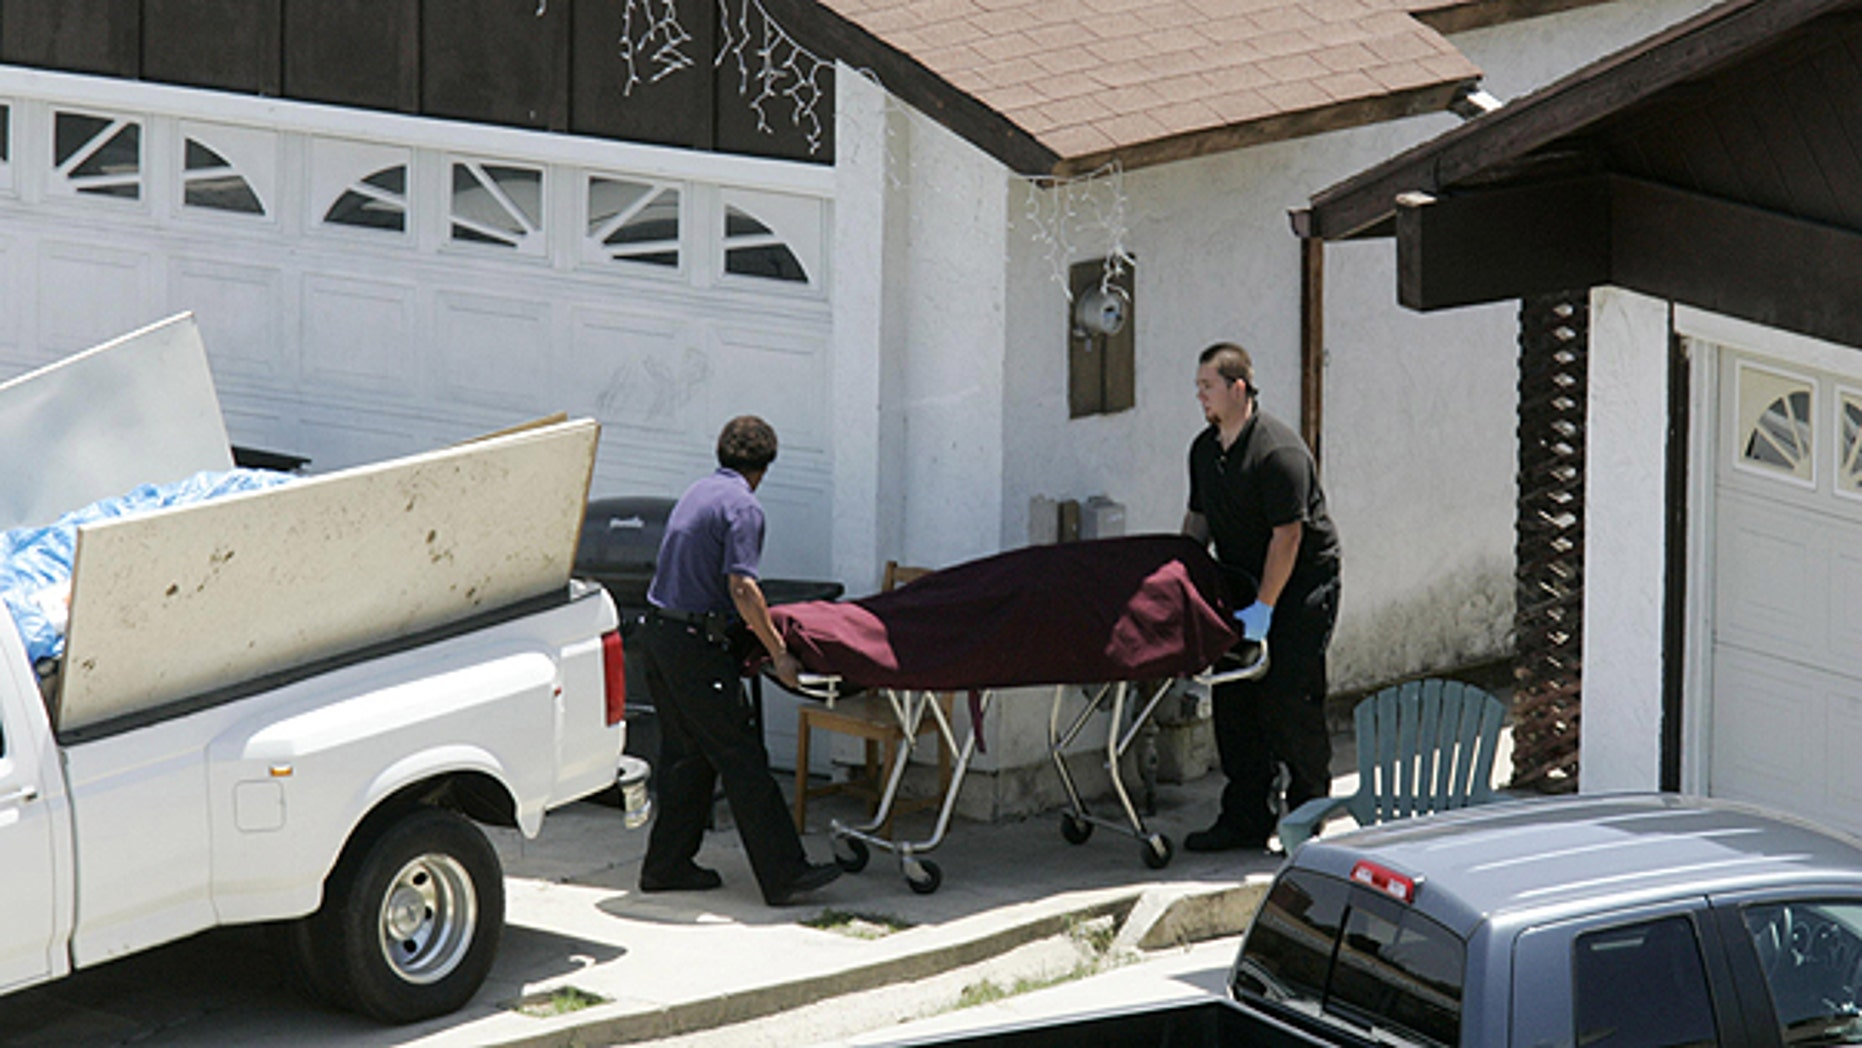 May 24: The body of an apparent drowning victim is removed at a house on the cul-de-sac of Parkcreek Court at North Bay Terraces, in San Diego.